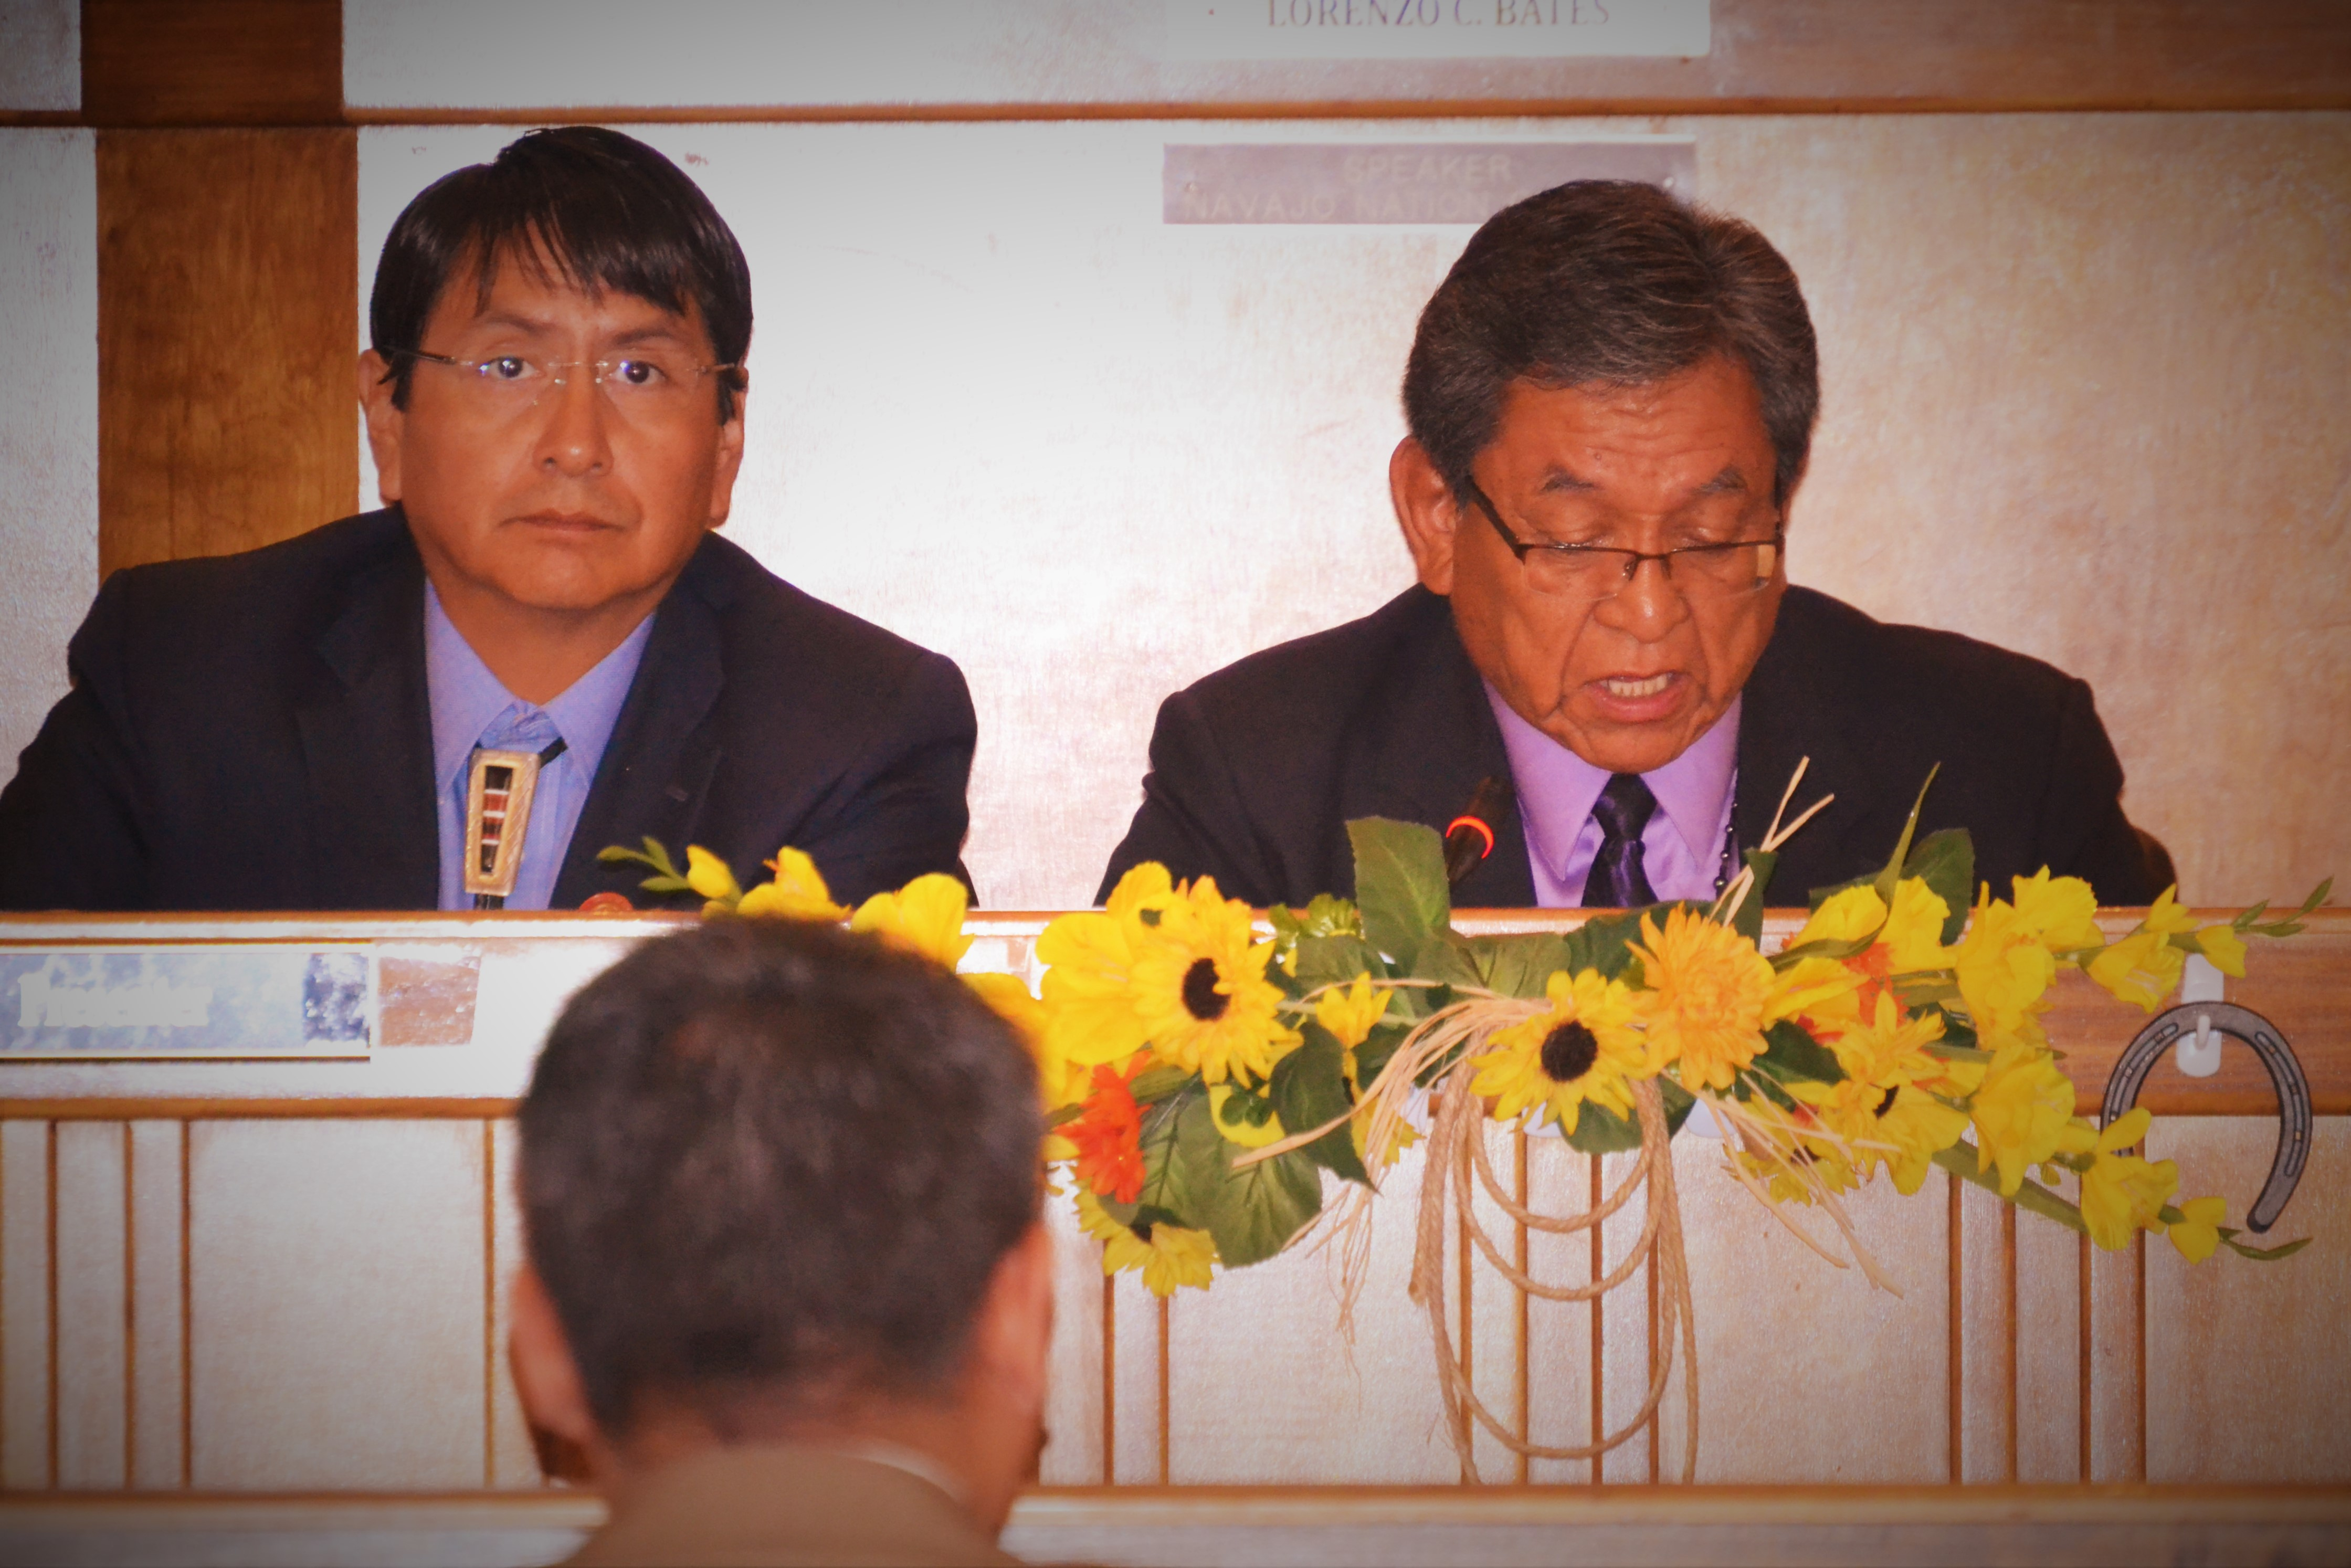 Navajo Nation Vice President Jonathan Nez and President Russell Begaye present their State of the Nation Address to the Navajo Nation Council during day one of summer session in the Council chambers in Window Rock, Ariz., on July 18, 2016. Photo by Marley Shebala